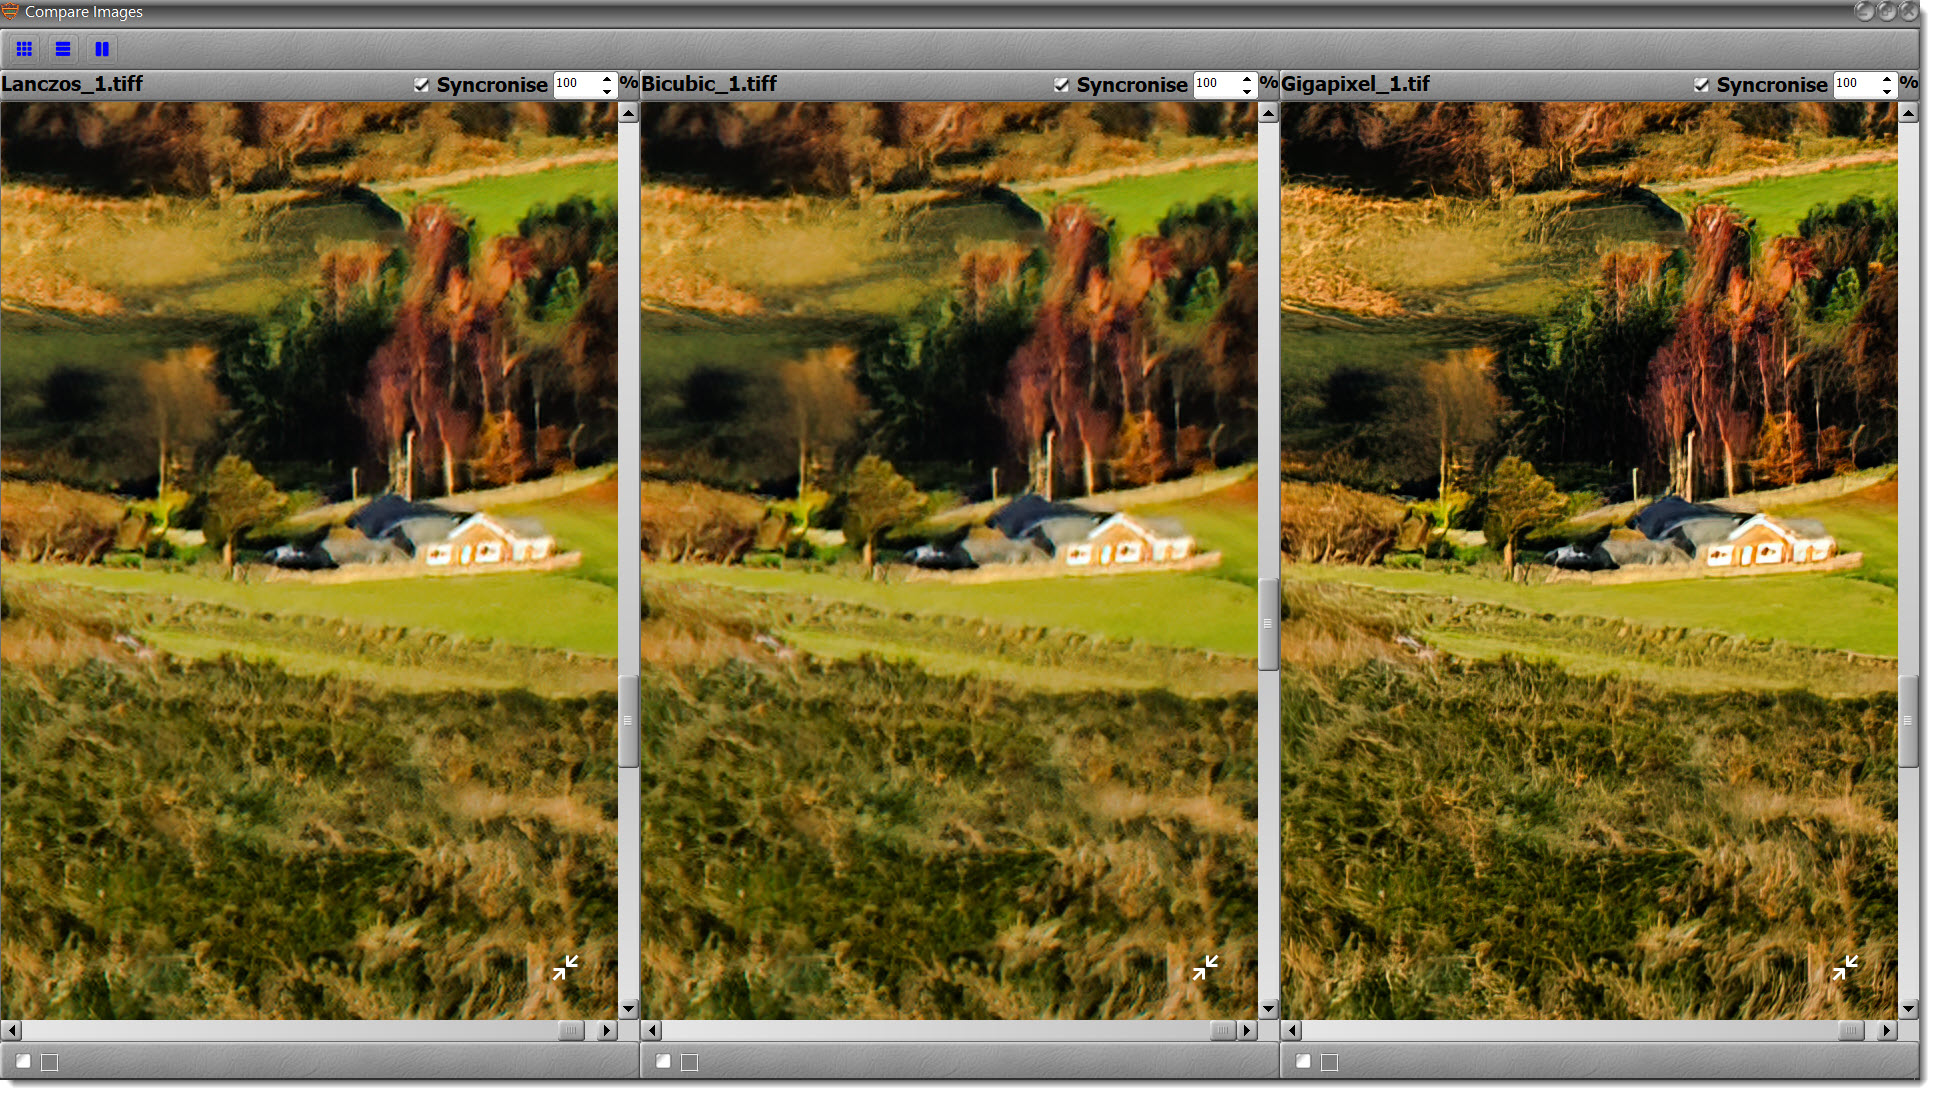 Image Resize Without Losing Quality - Results